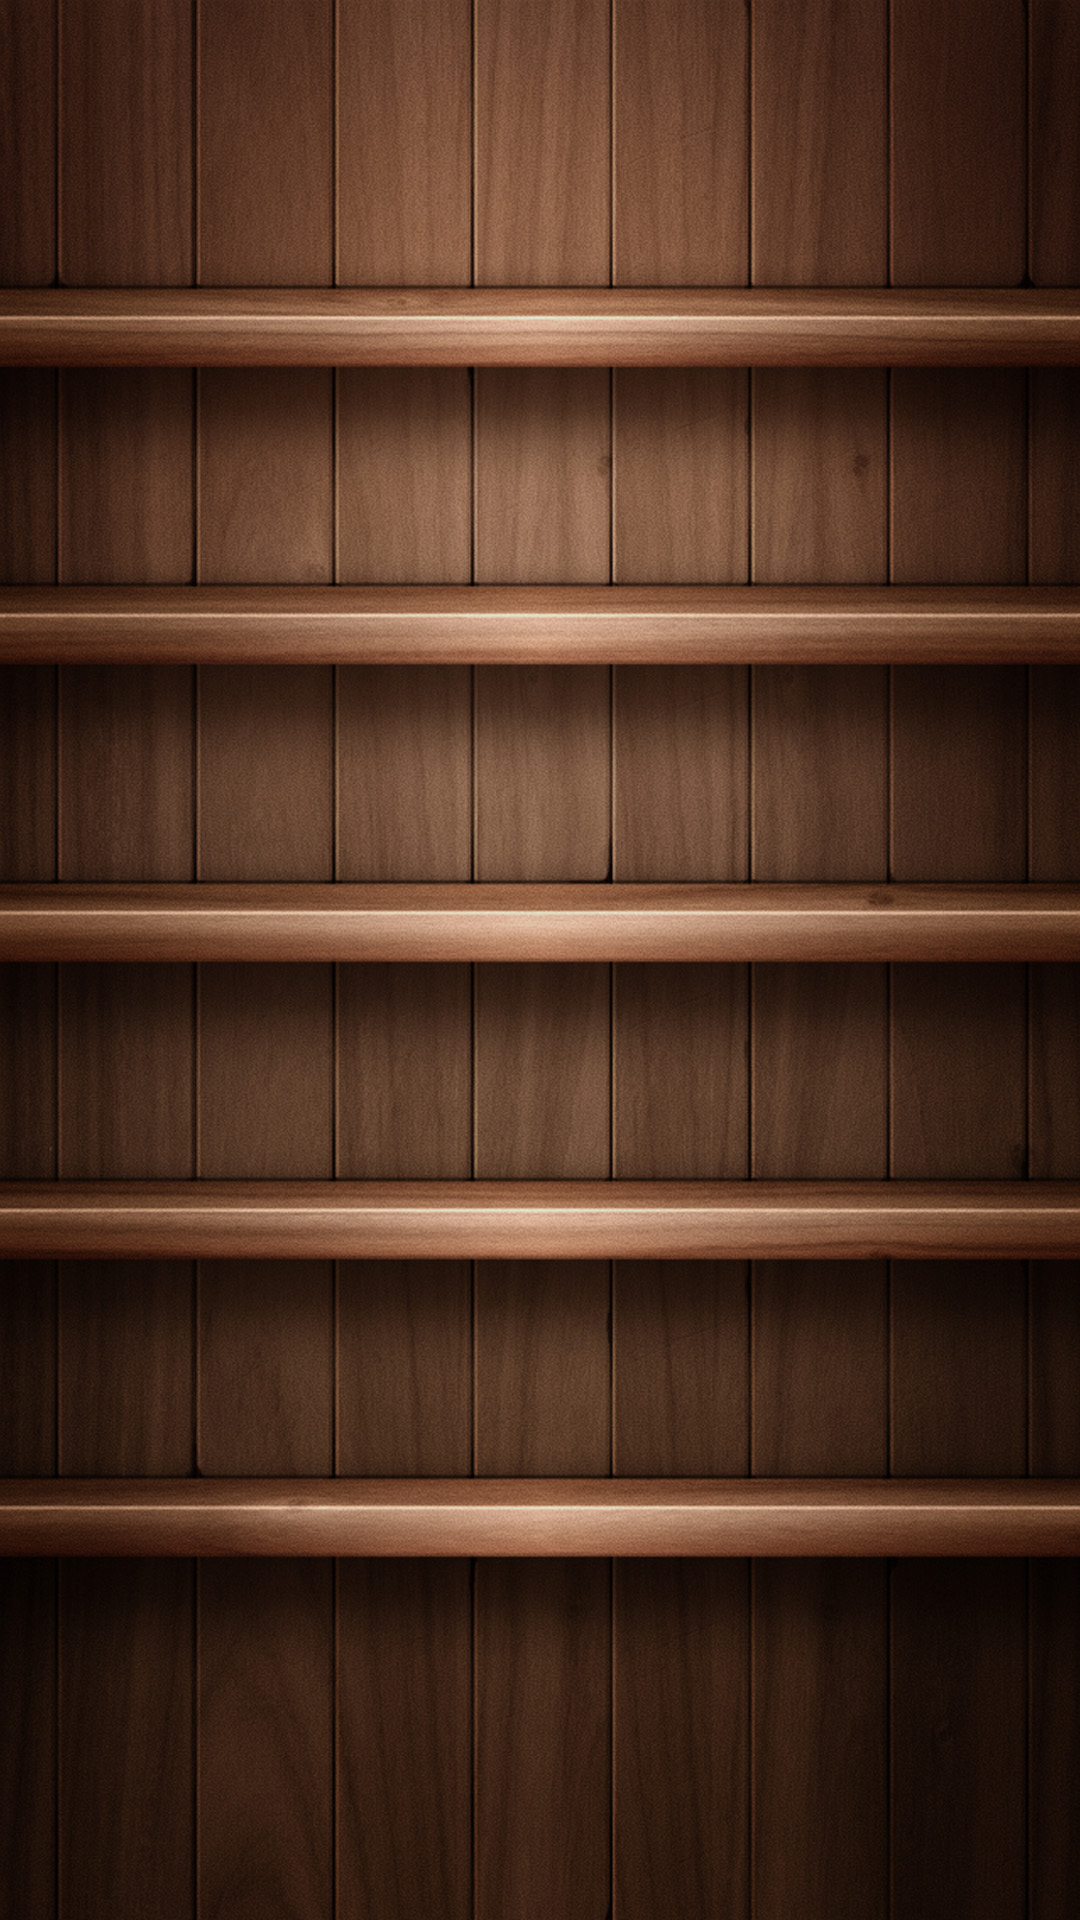 Shelf iPhone 6 Plus Wallpaper 151 iPhone 6 Plus Wallpapers HD 1080x1920